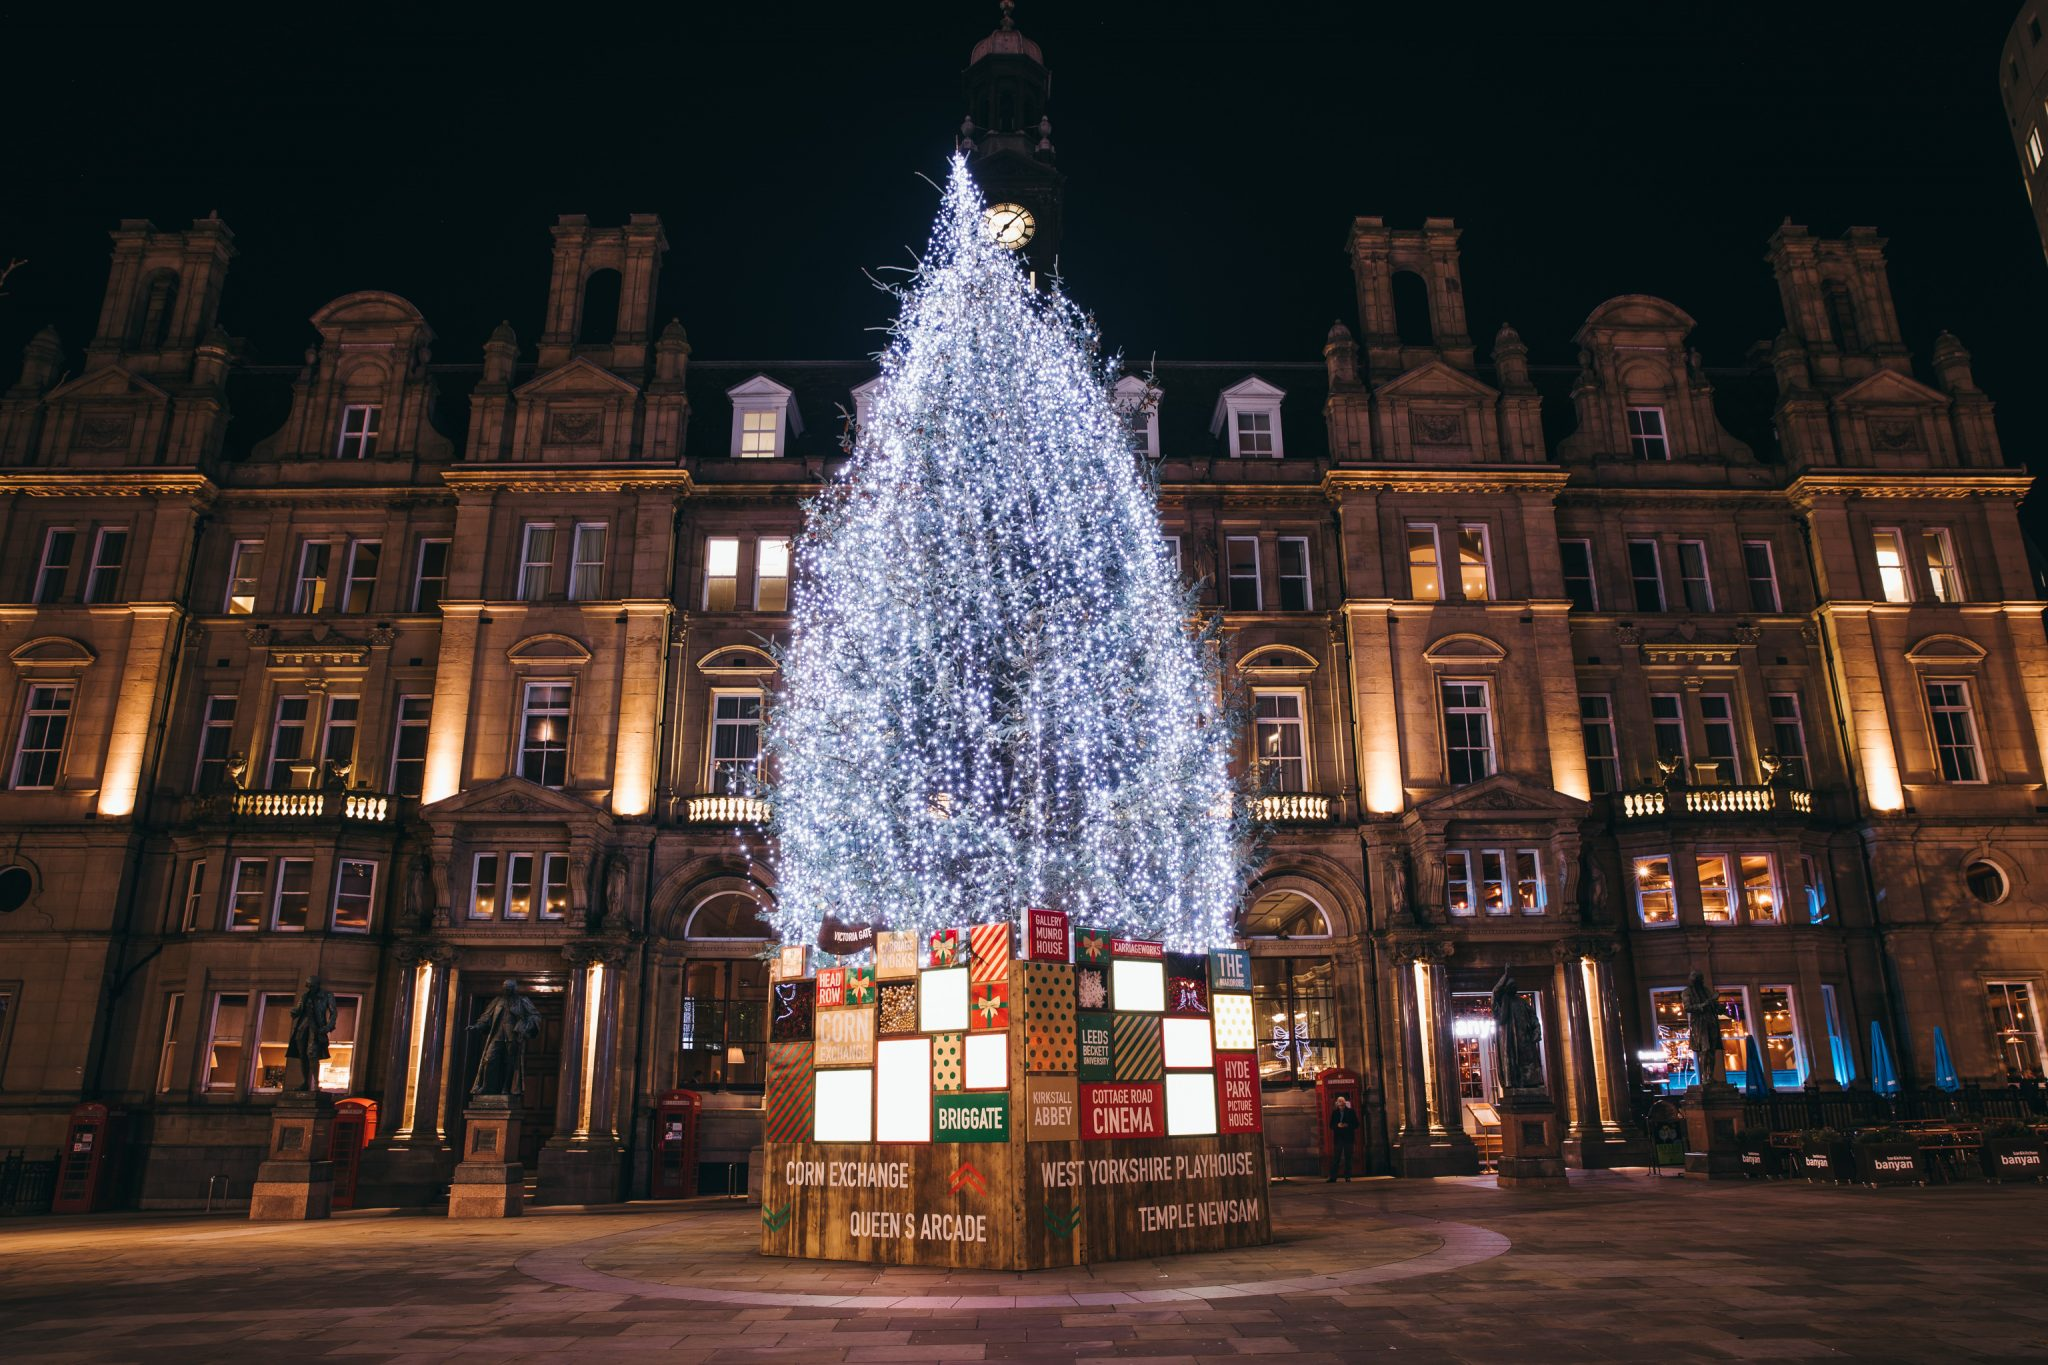 Andrew Cooper: And so this is Christmas… In Leeds